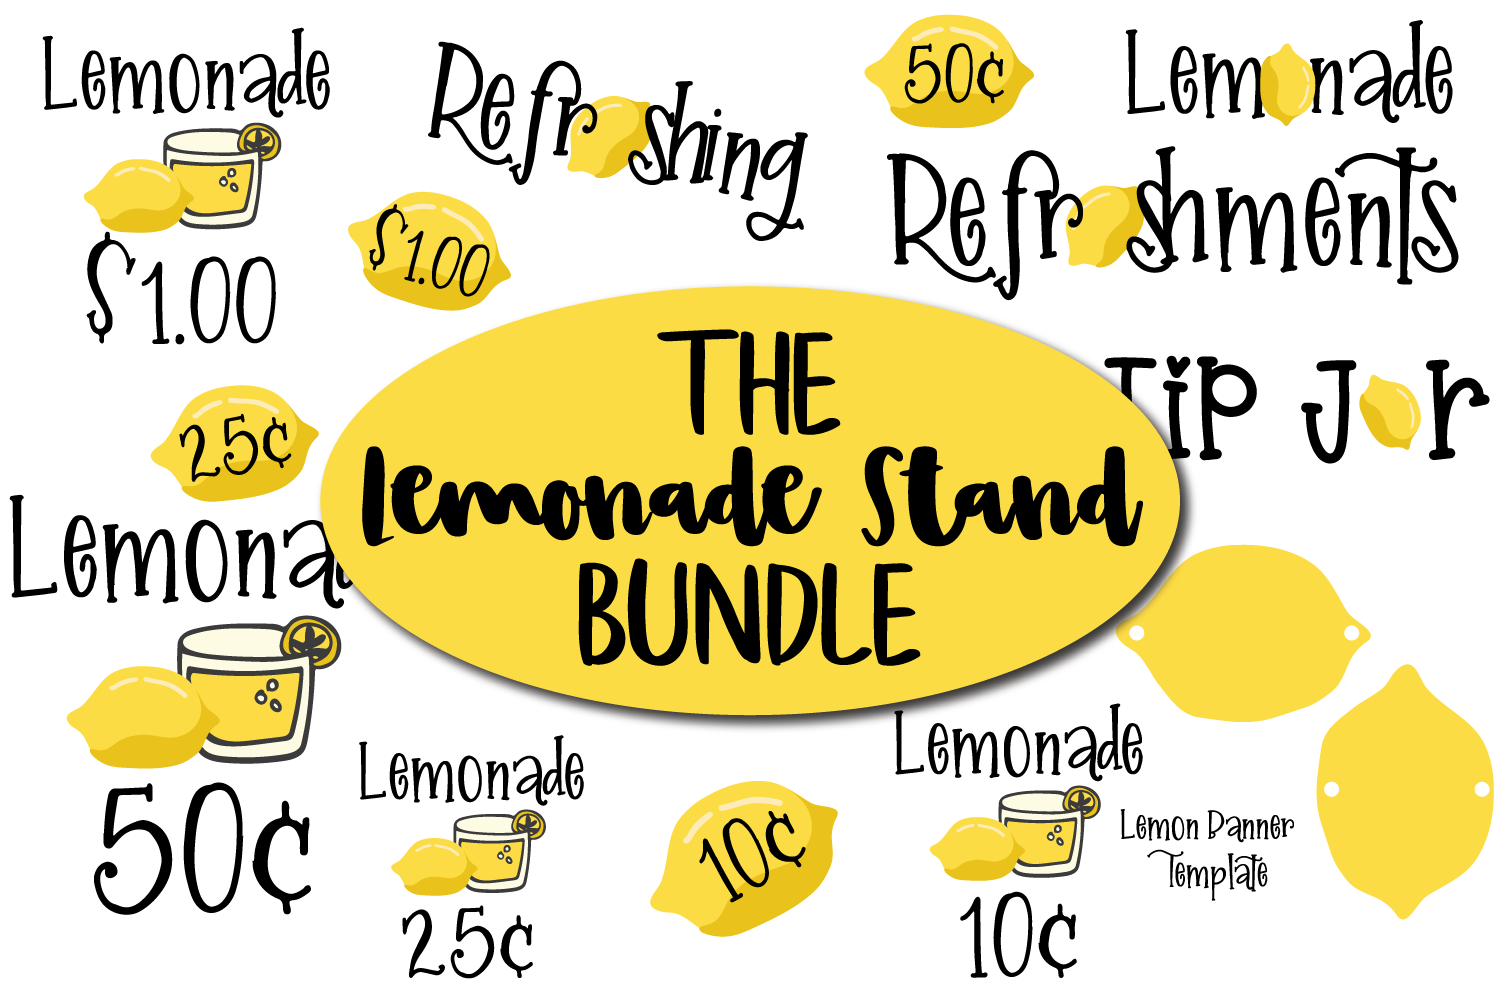 Lemonade Stand Bundle plus bonus posters example image 1